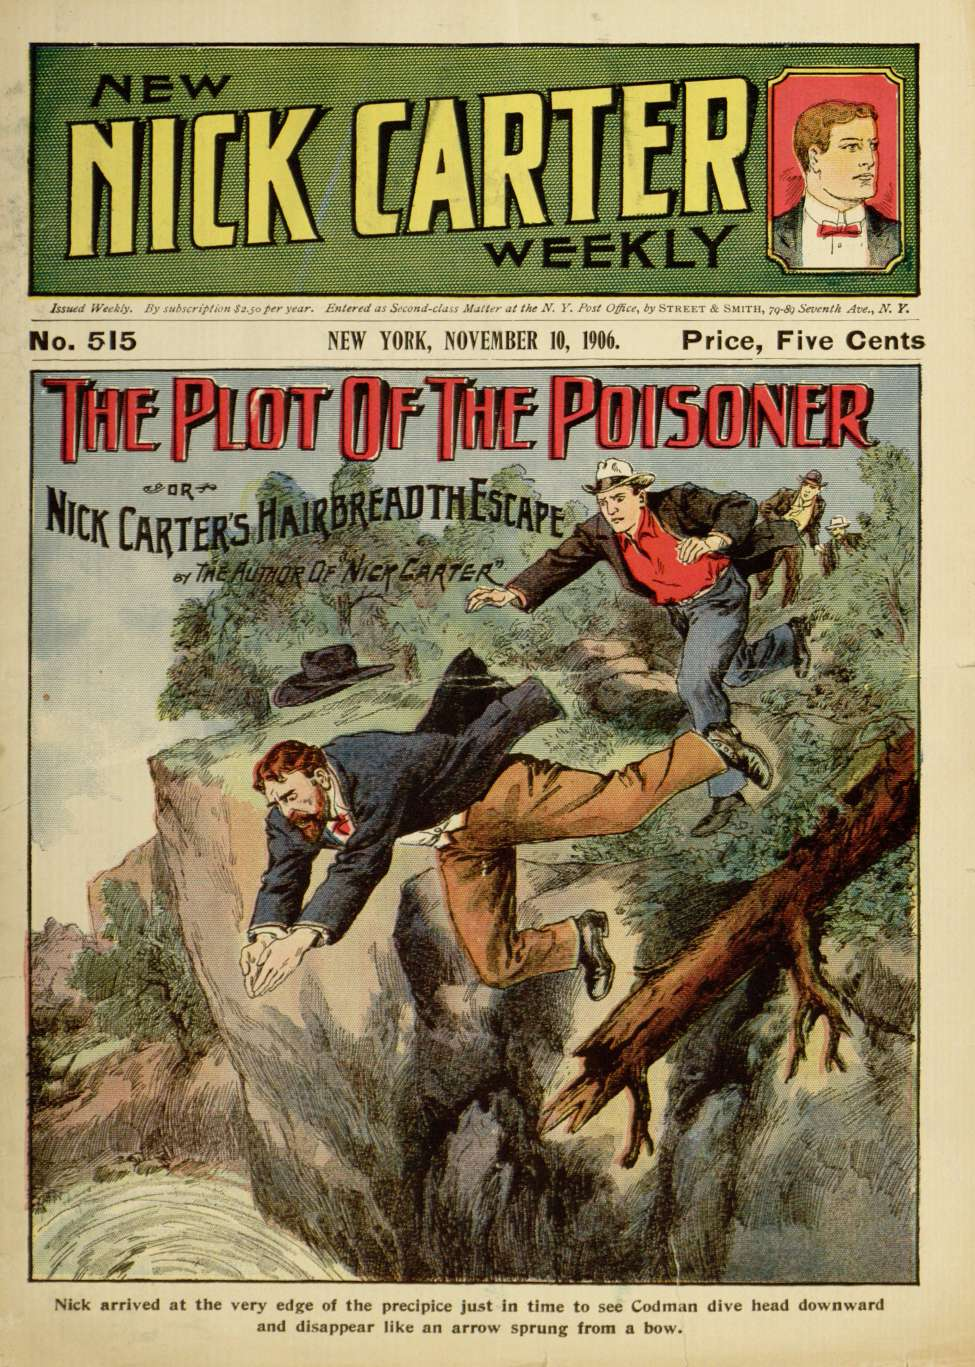 Comic Book Cover For New Nick Carter Weekly 515 - Plot of the Poisoner